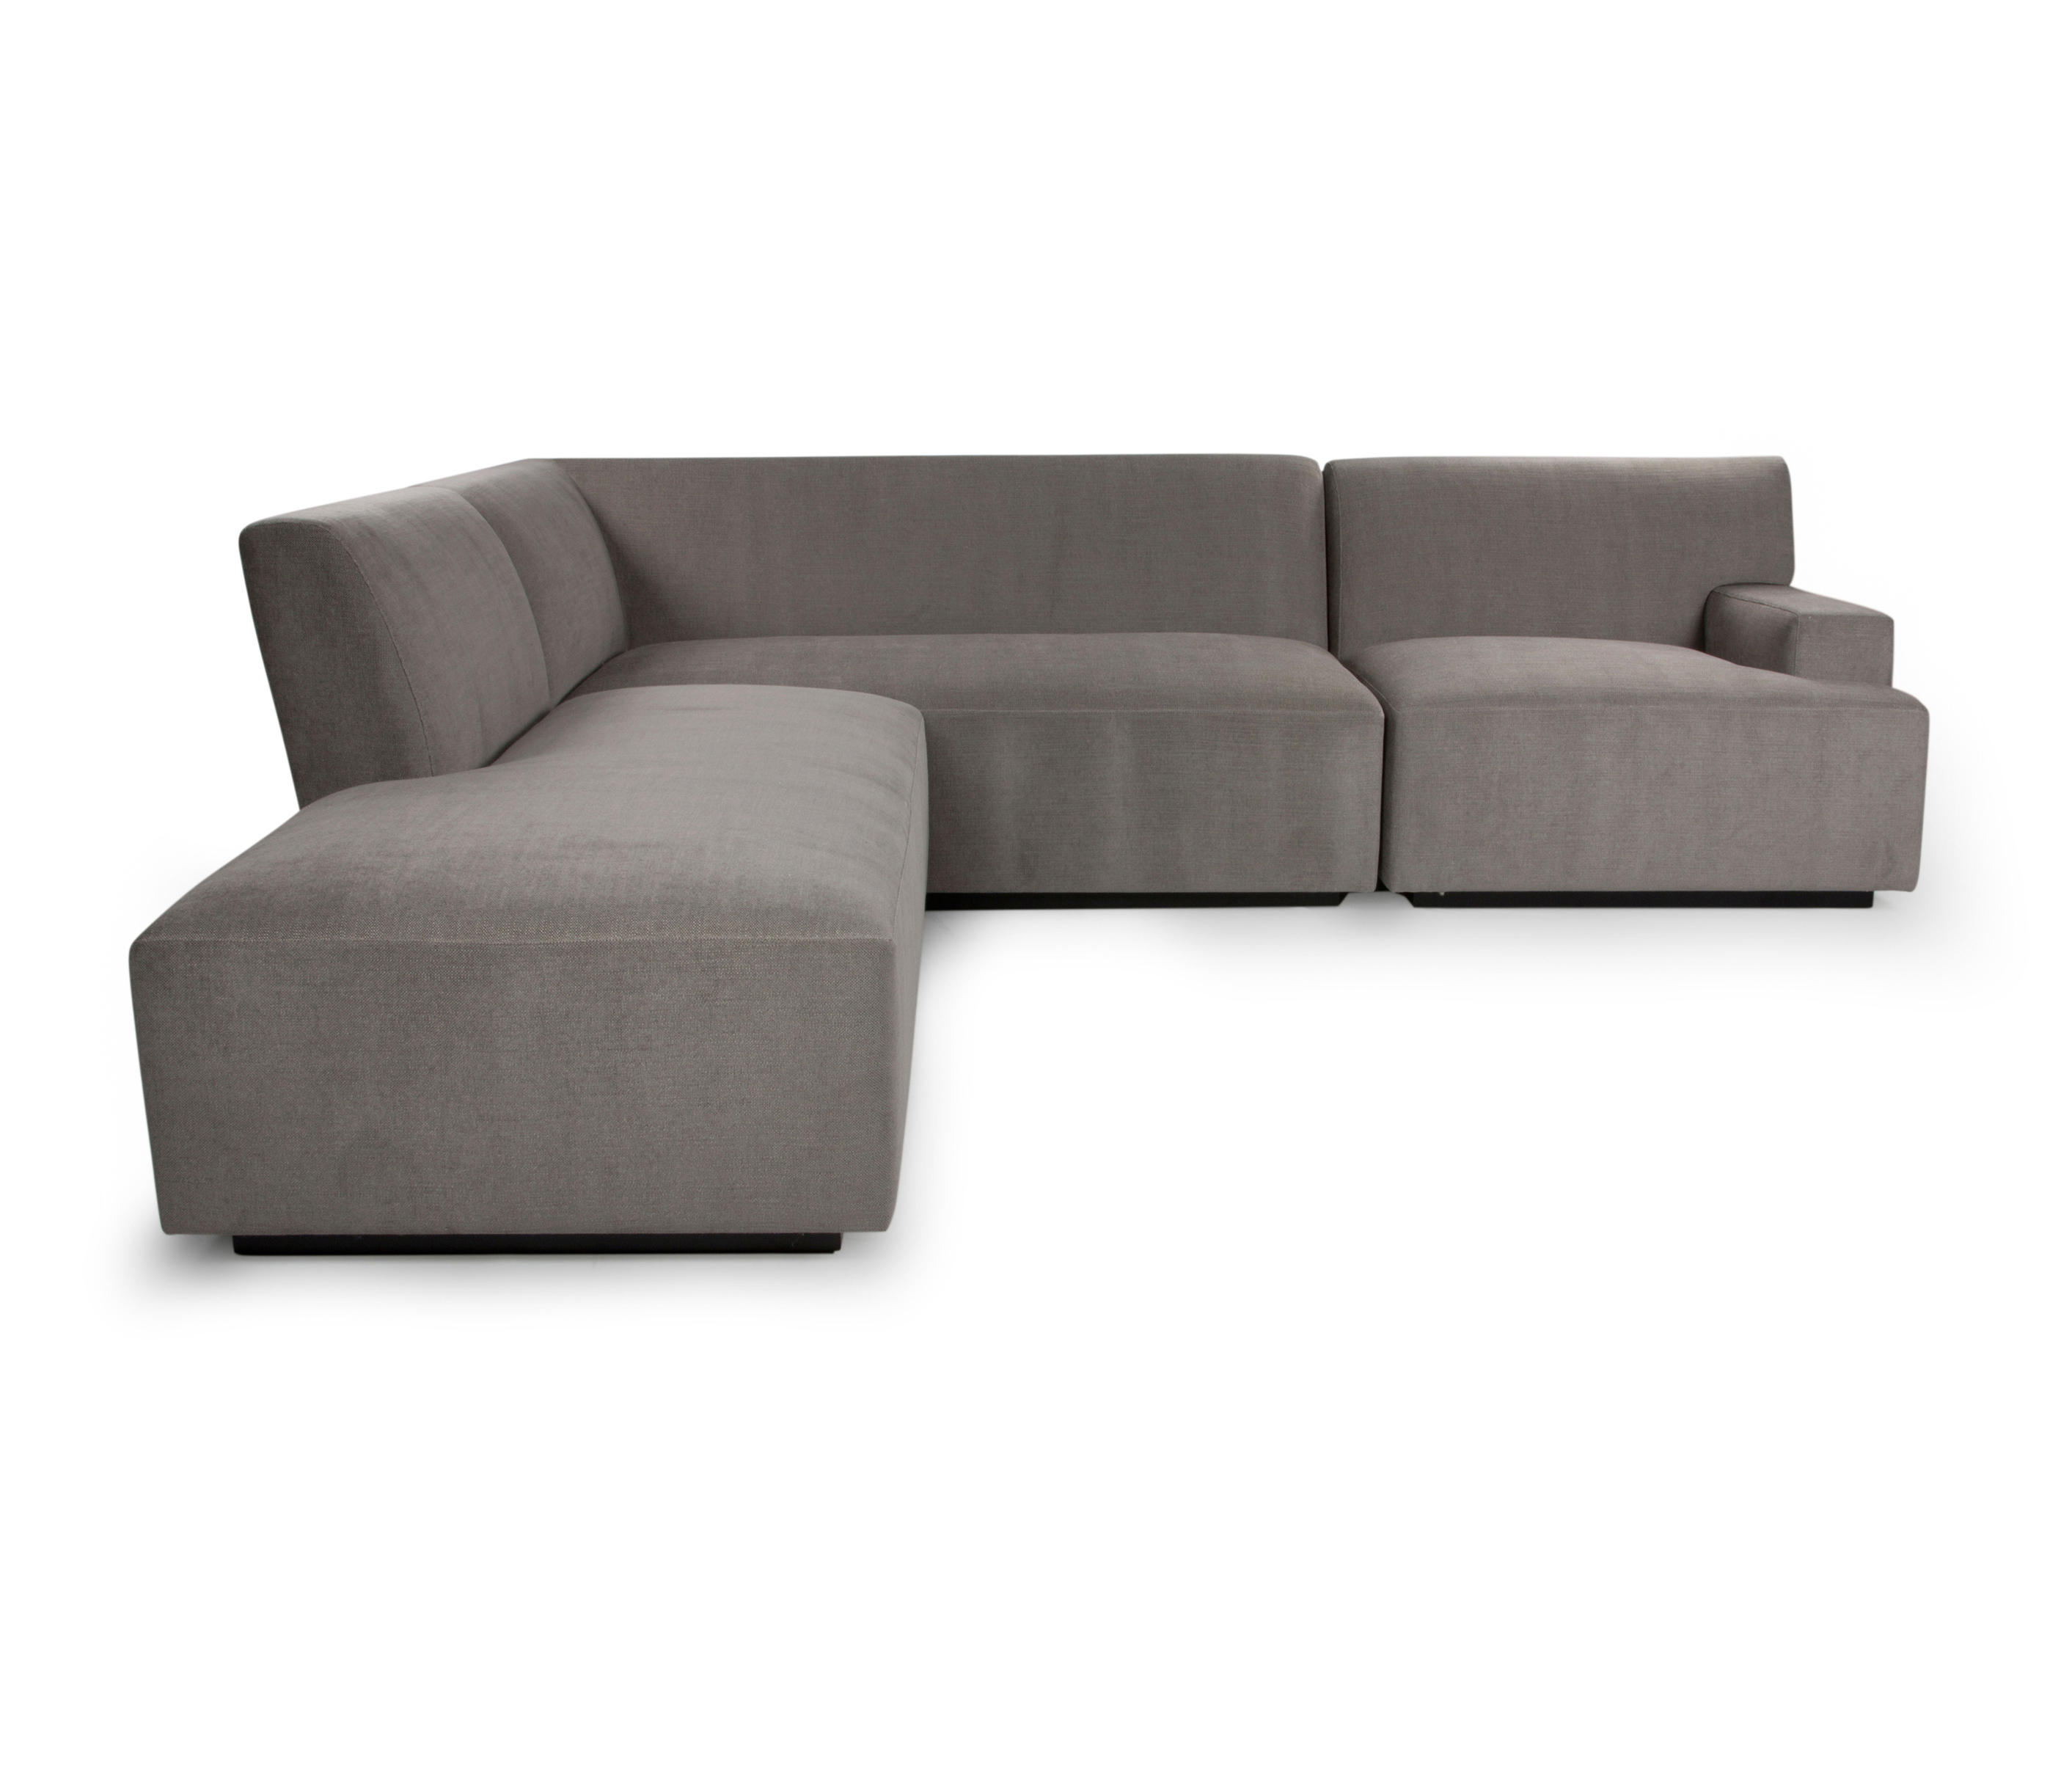 RILEY MODULAR SOFA Sofas from The Sofa & Chair pany Ltd